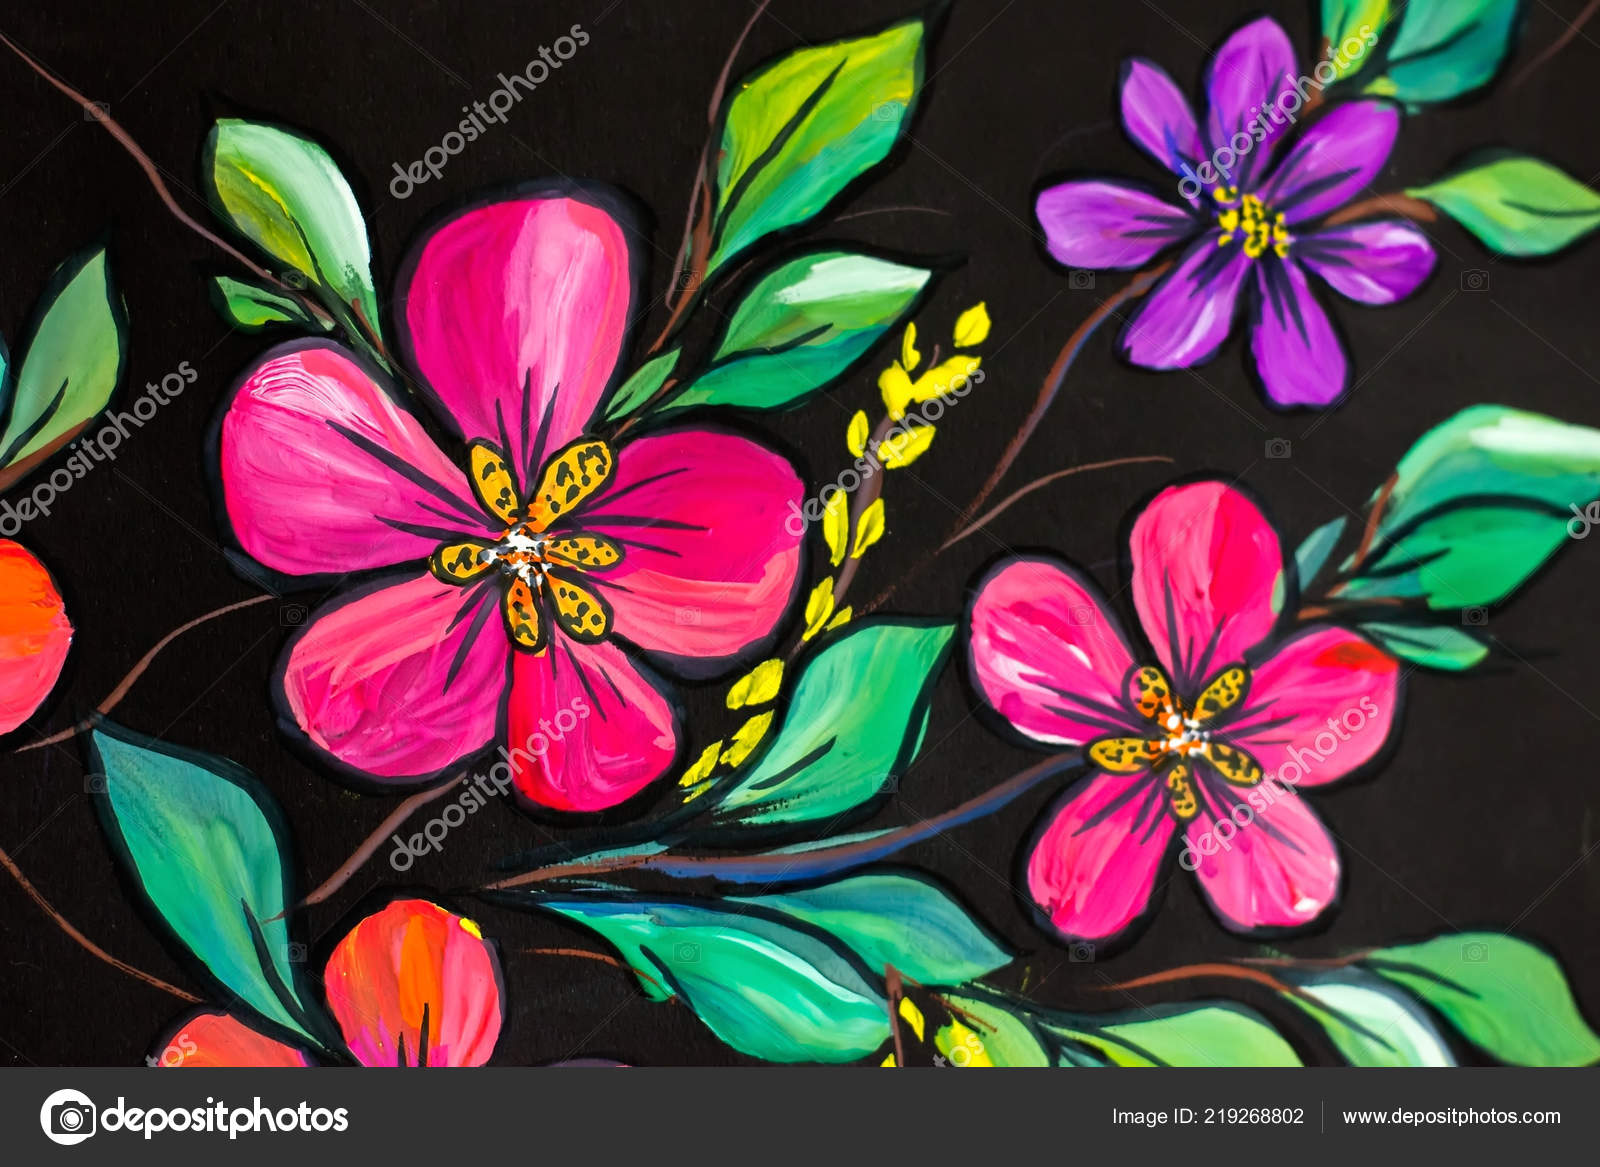 Flowers Illustration Black Background Oil Painting Impressionism Style Flower Painting Stock Photo Image By C Koliadzynskairyna 219268802